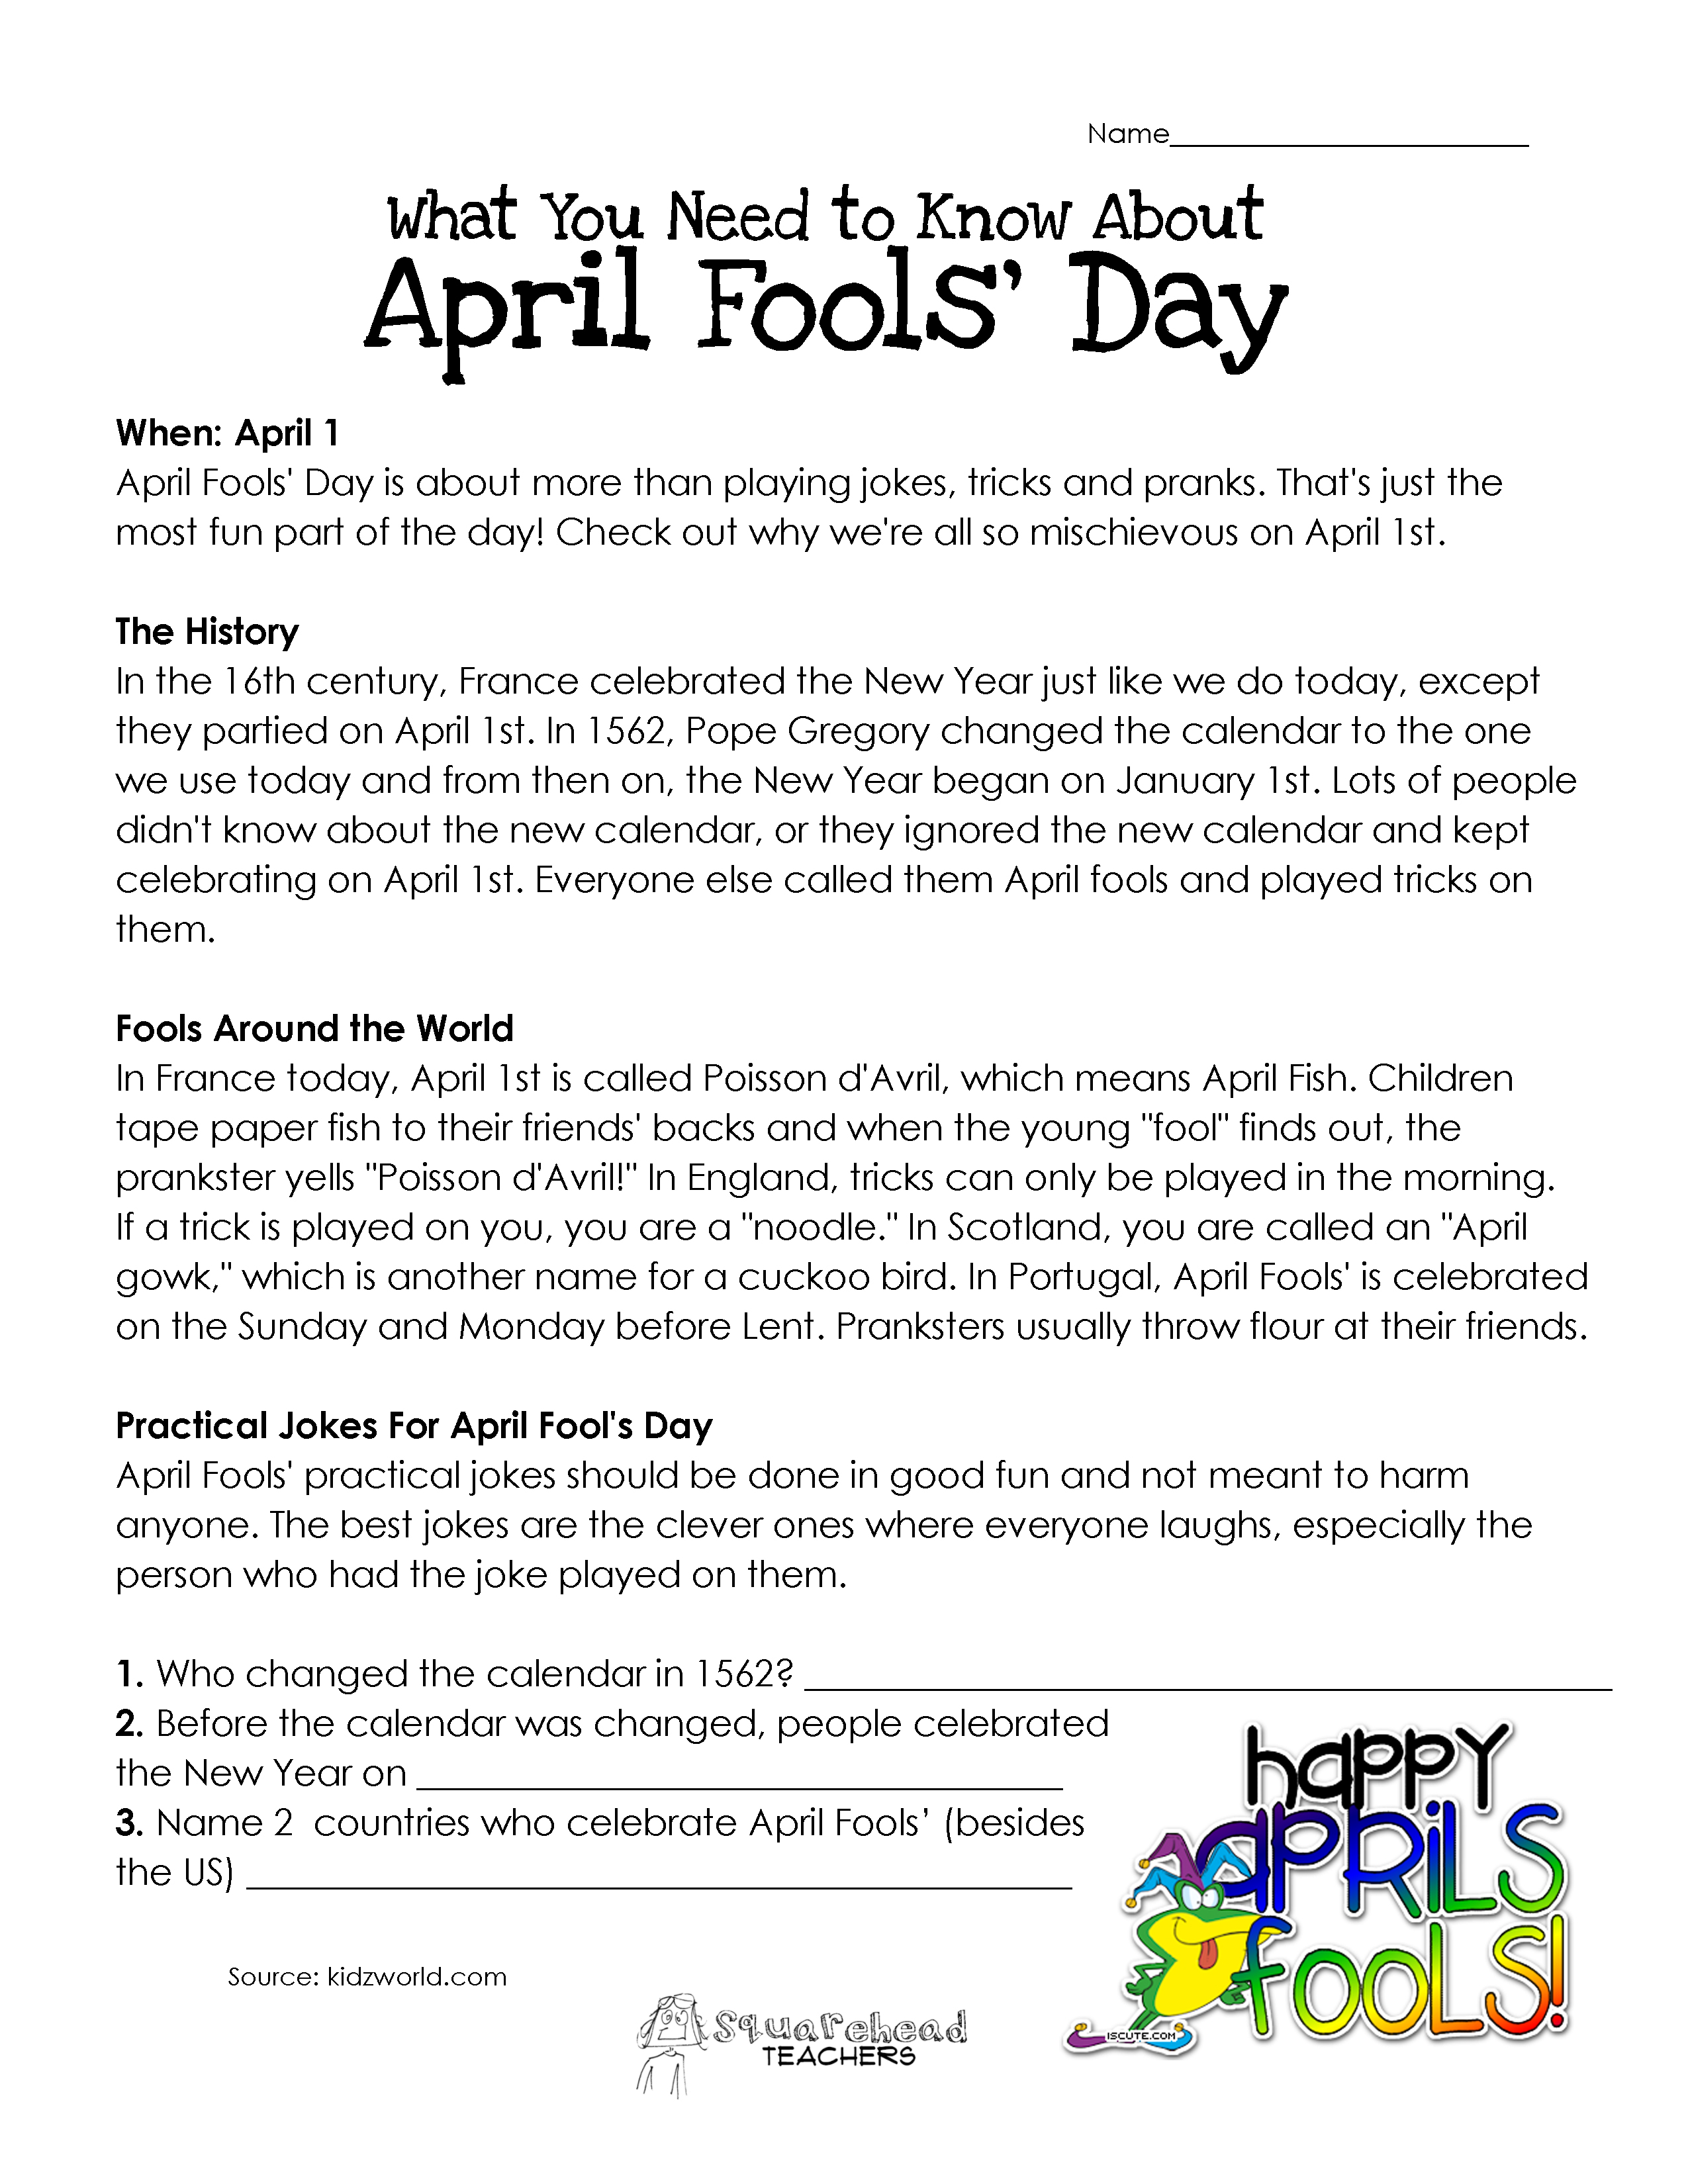 What You Need to Know About April Fools Day – All Summer in a Day Worksheet